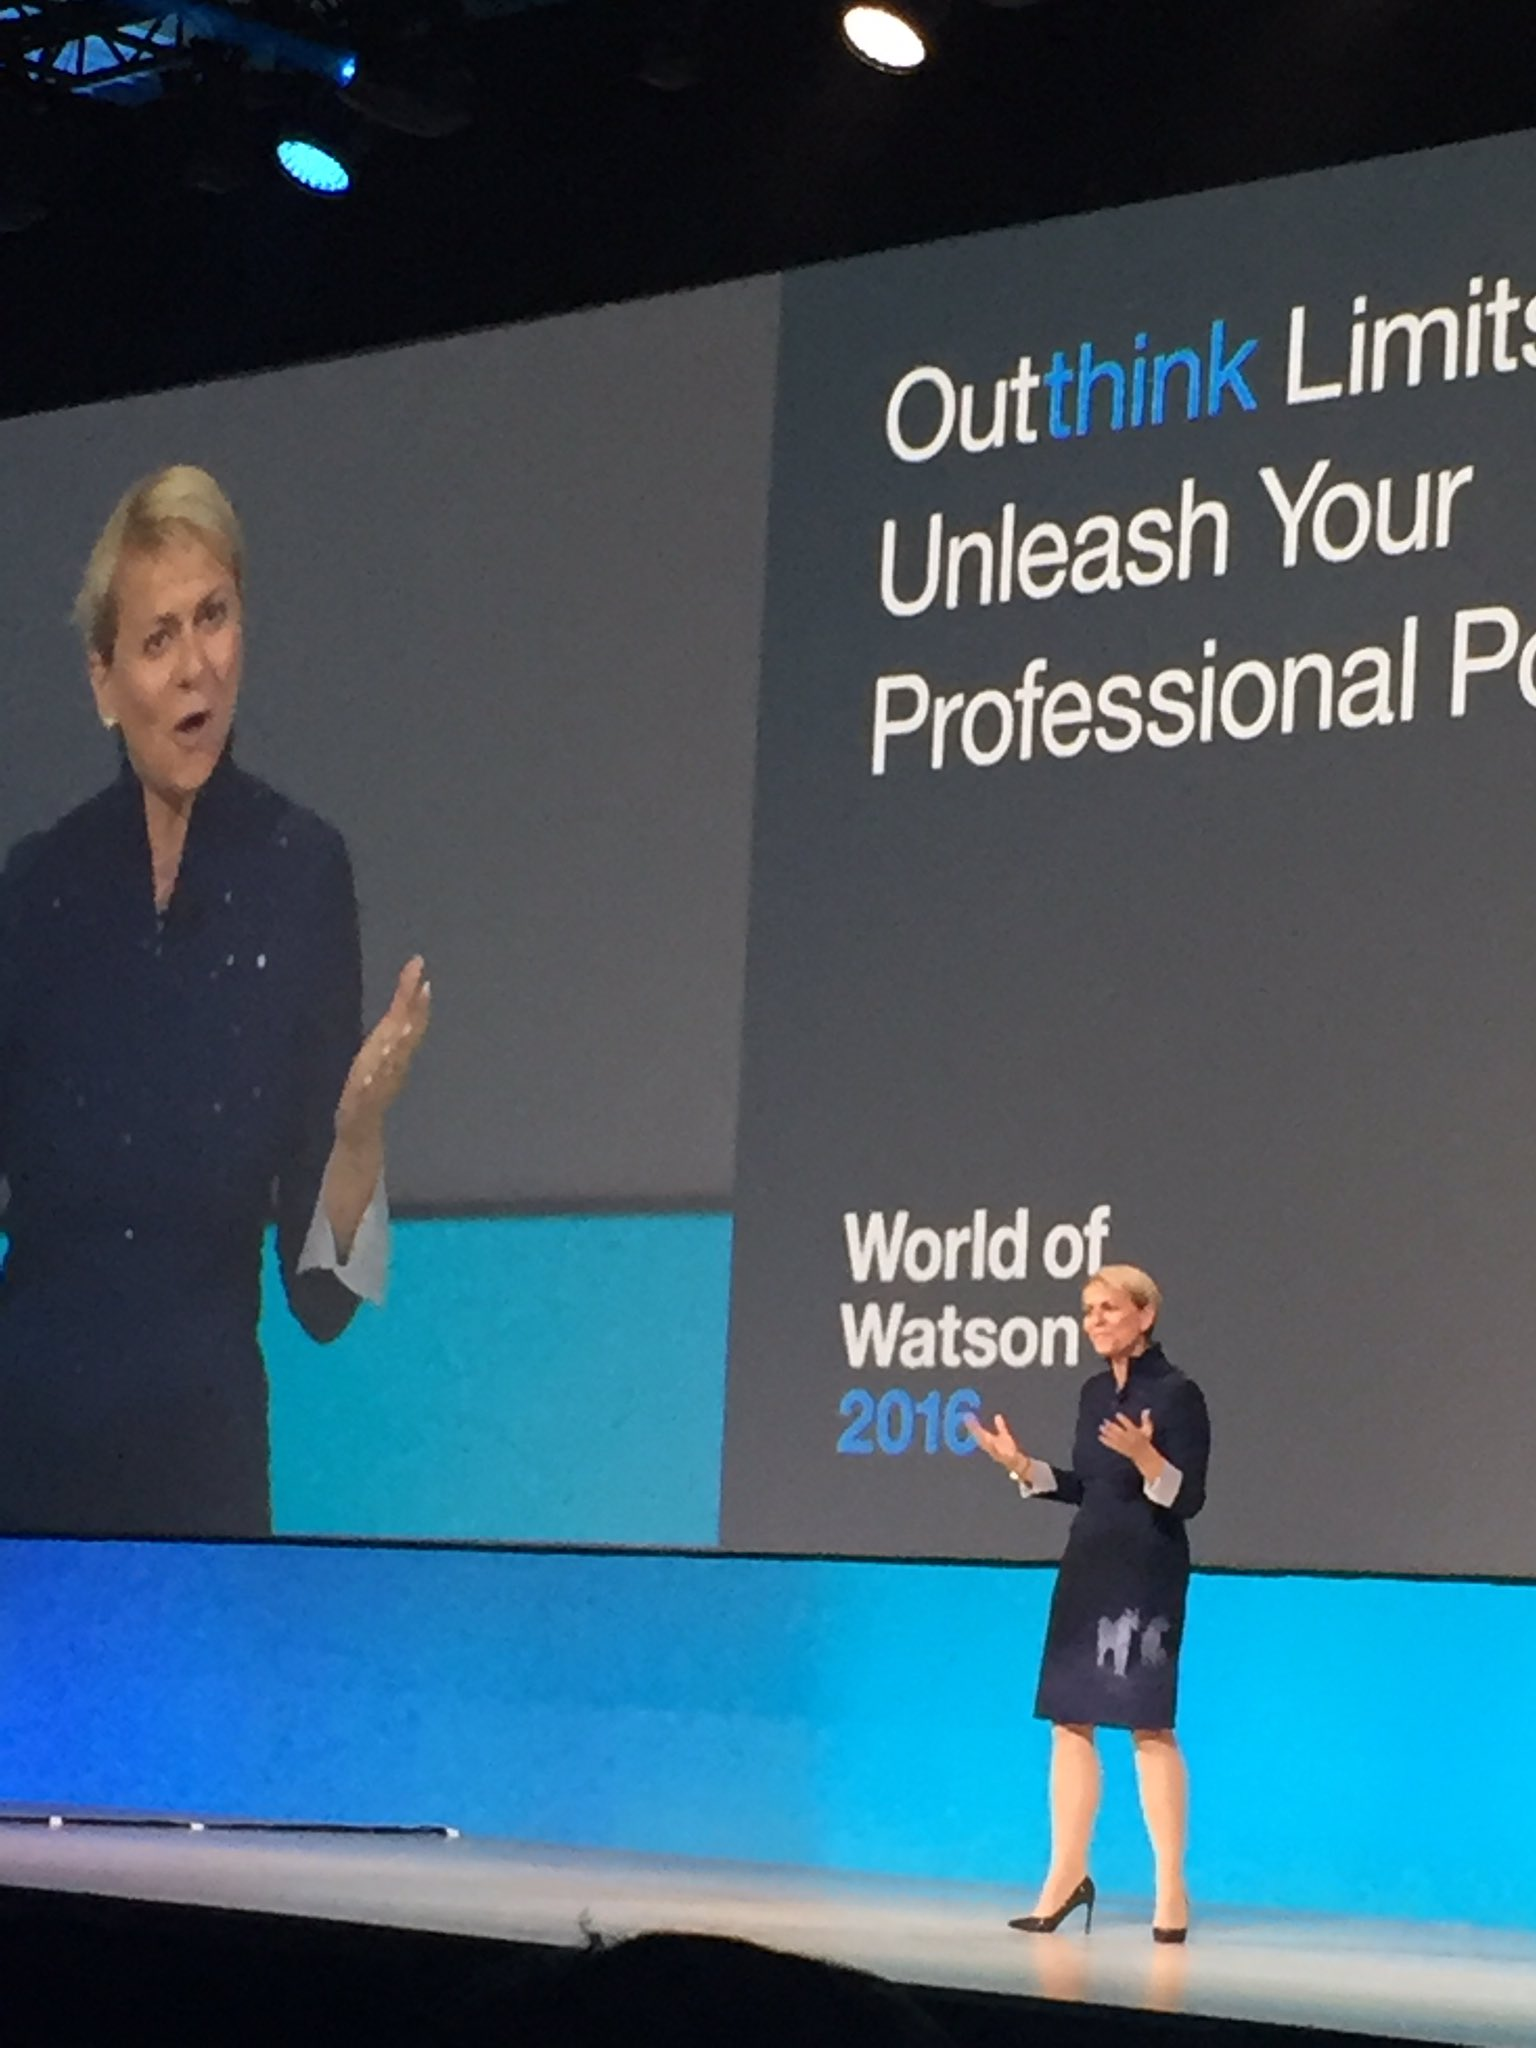 #Watson processes ambiguous data - and reasons, learns & recommends without bias across professions...'@harrietgreen1 #ibmwow https://t.co/a2eaCTgCqV